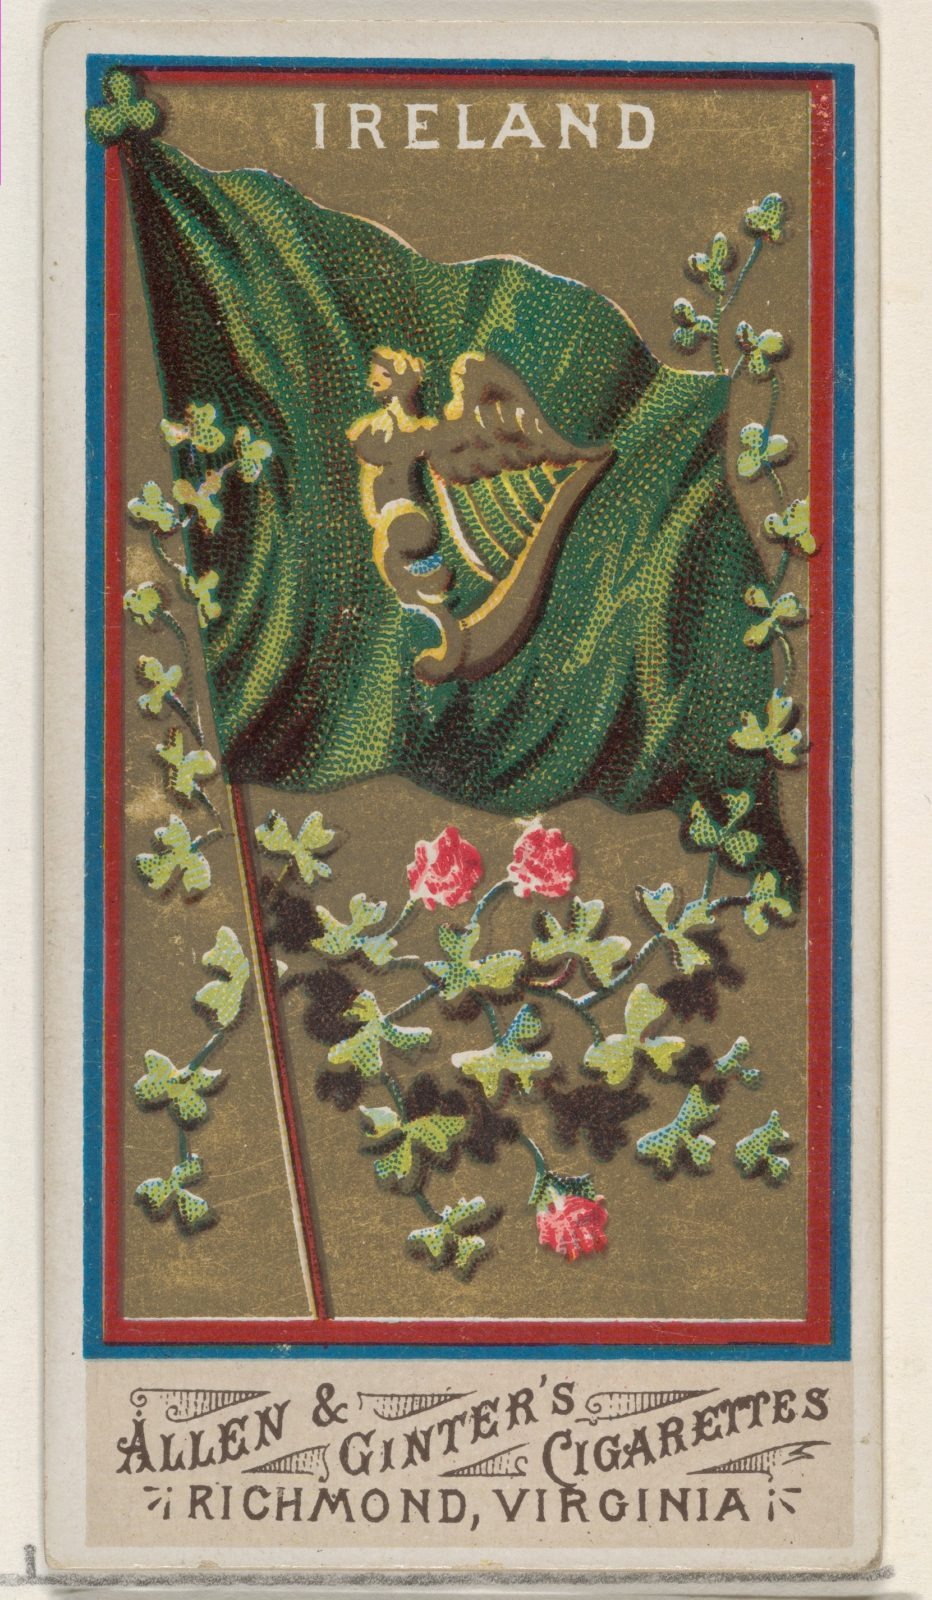 Ireland, from Flags of All Nations, Series 1 (N9) for Allen & Ginter Cigarettes Brands